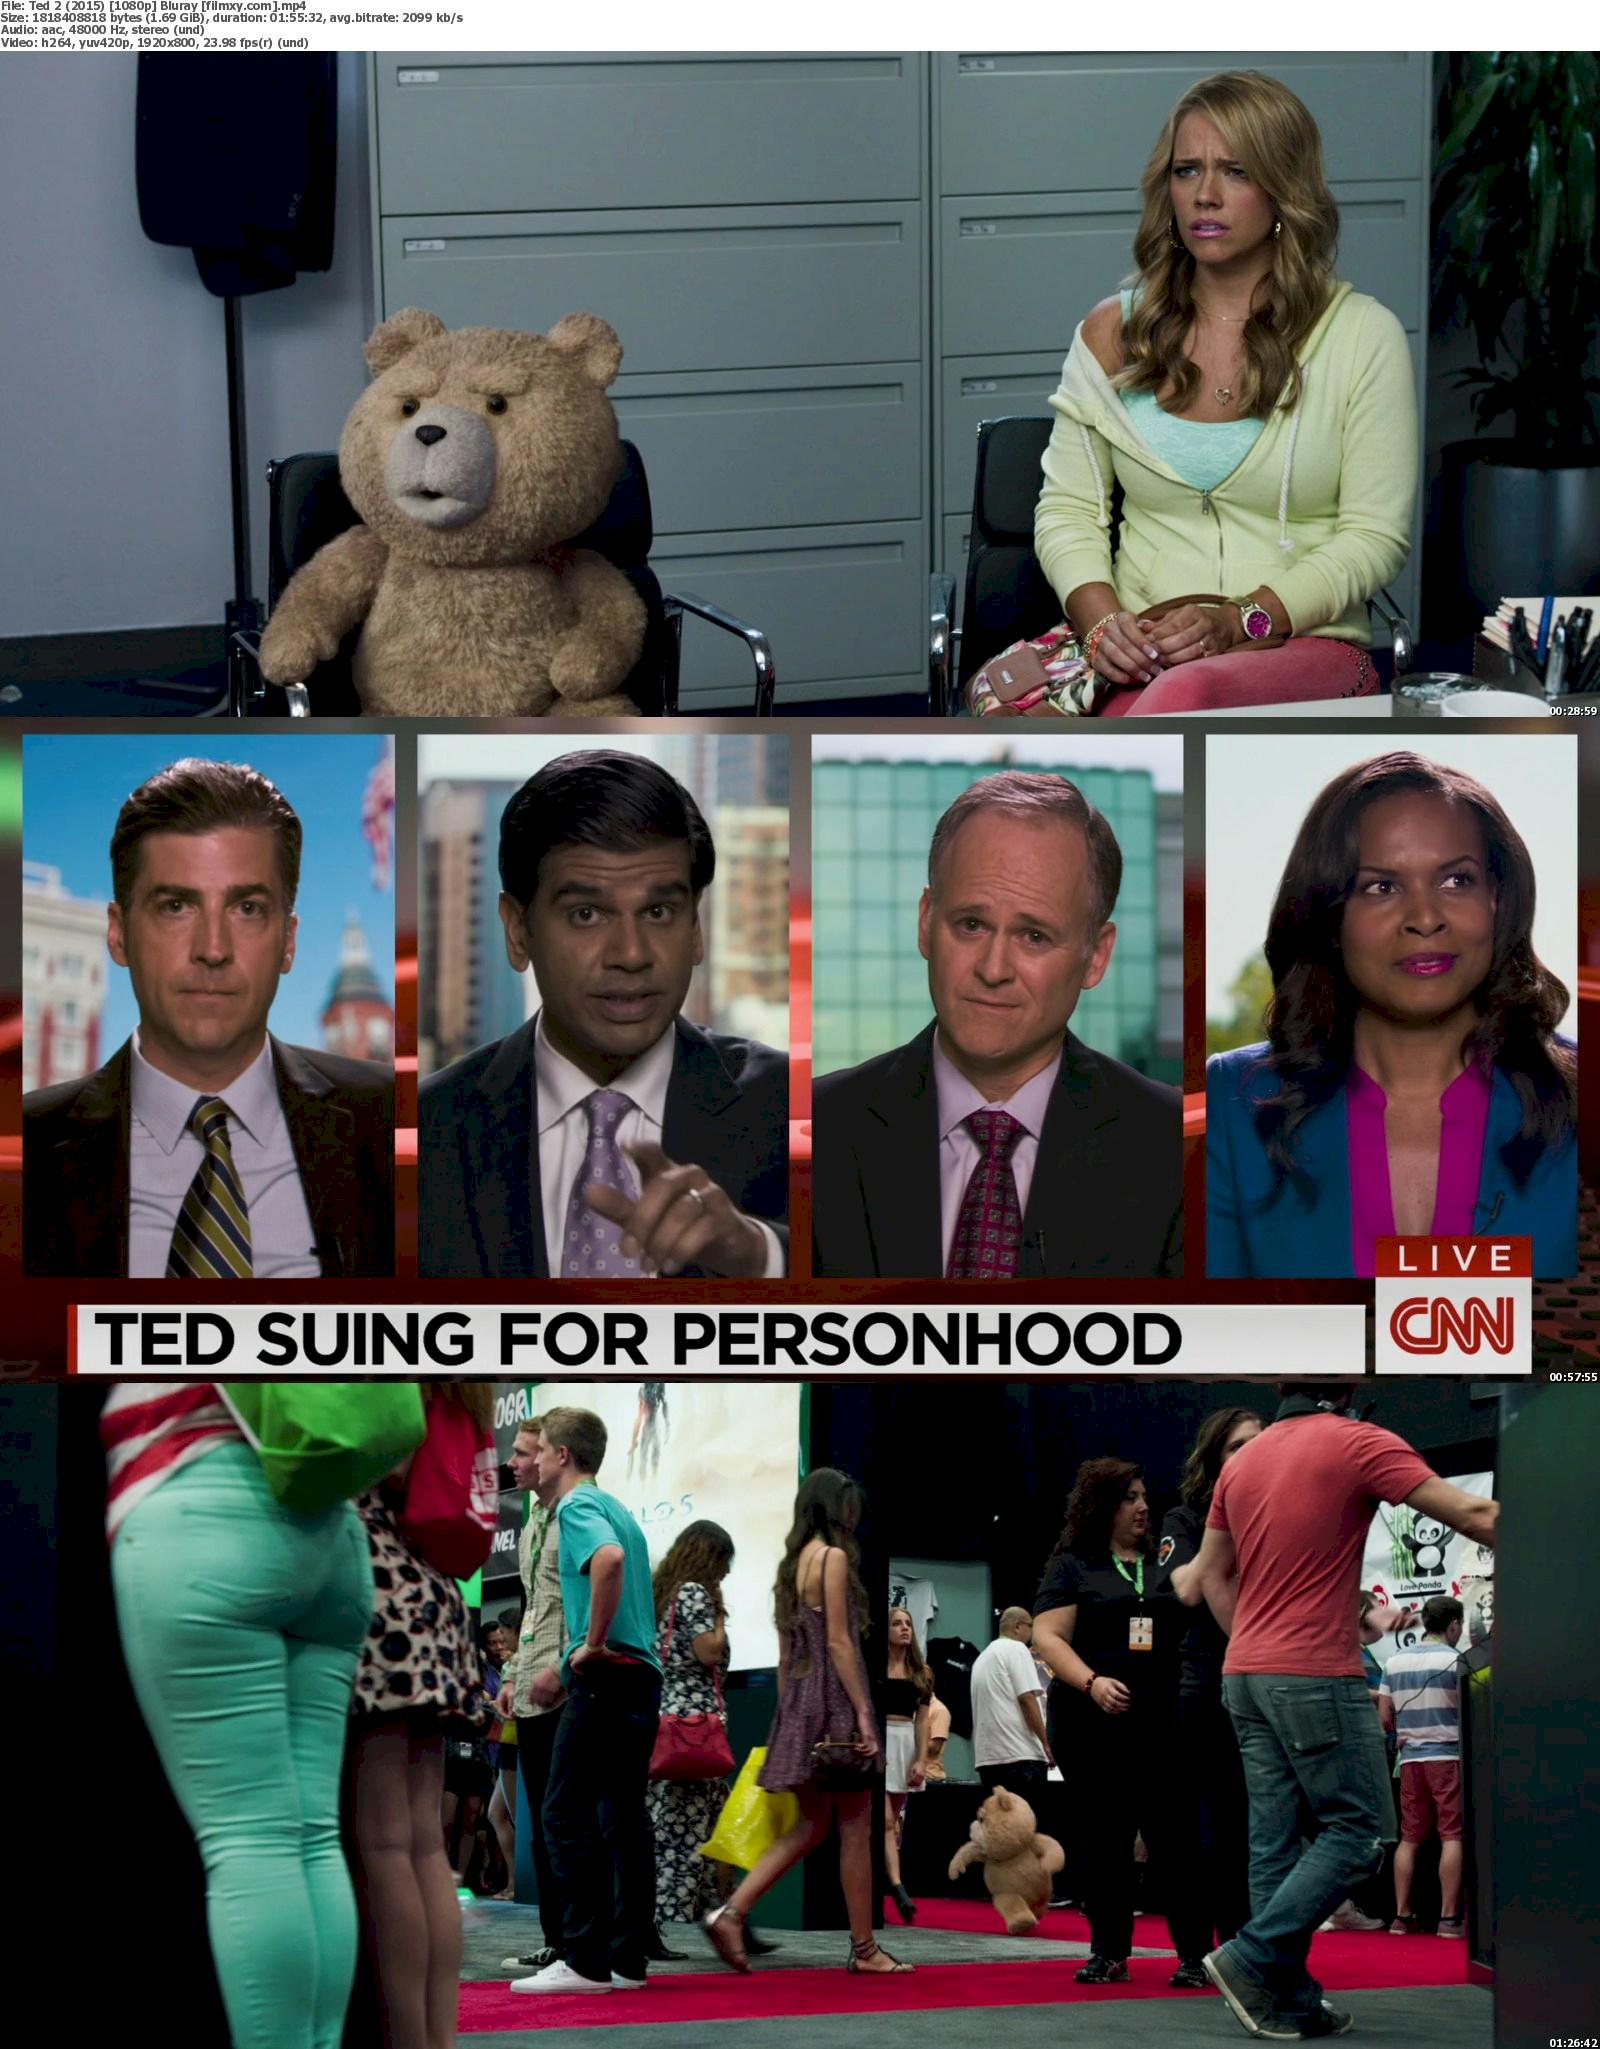 Ted 2 (2015) 720p & 1080p Bluray Free Download 1080p Screenshot